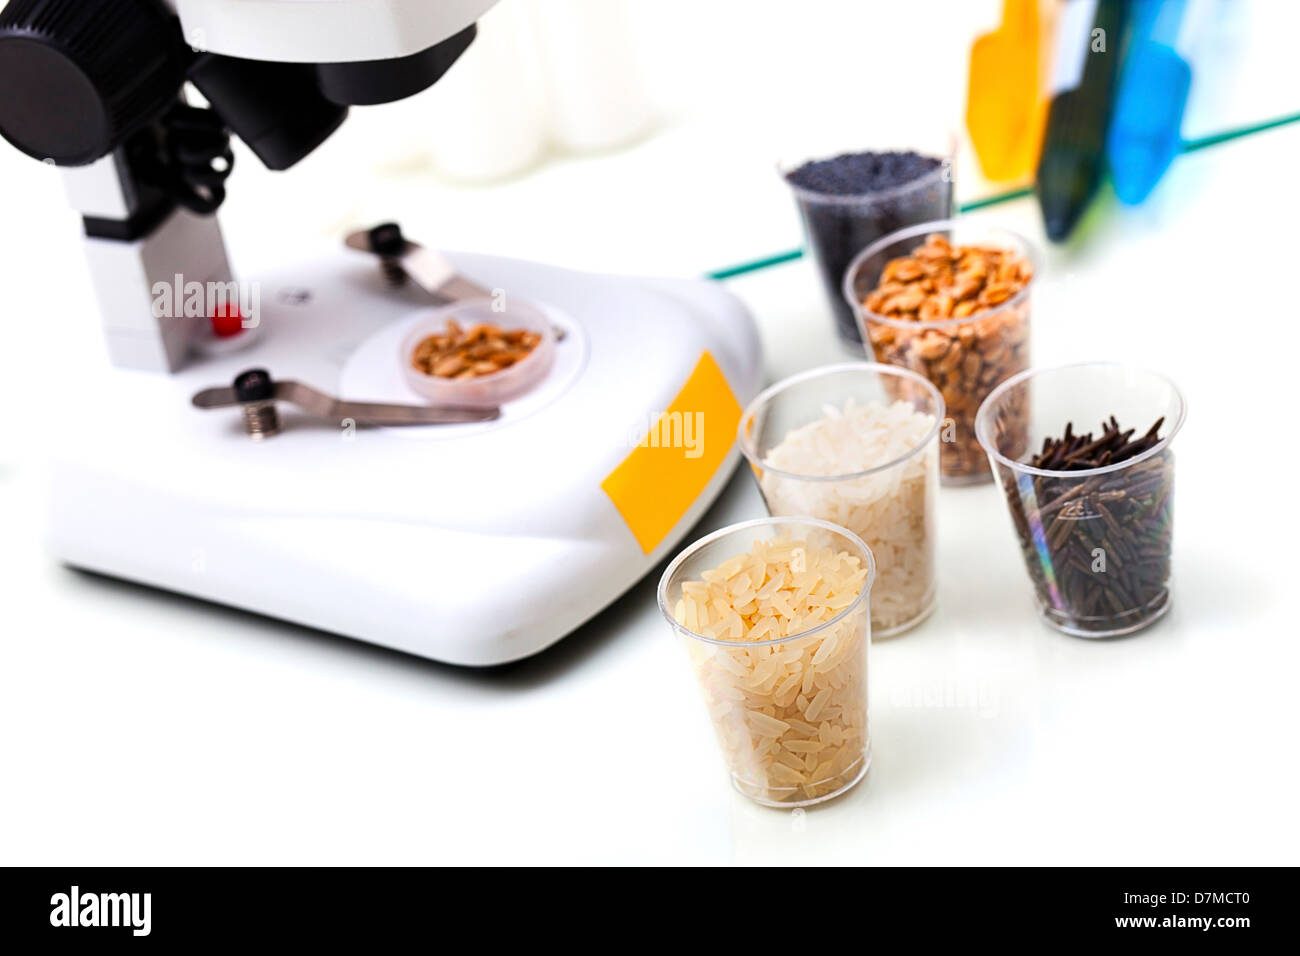 Food research, conceptual image - Stock Image